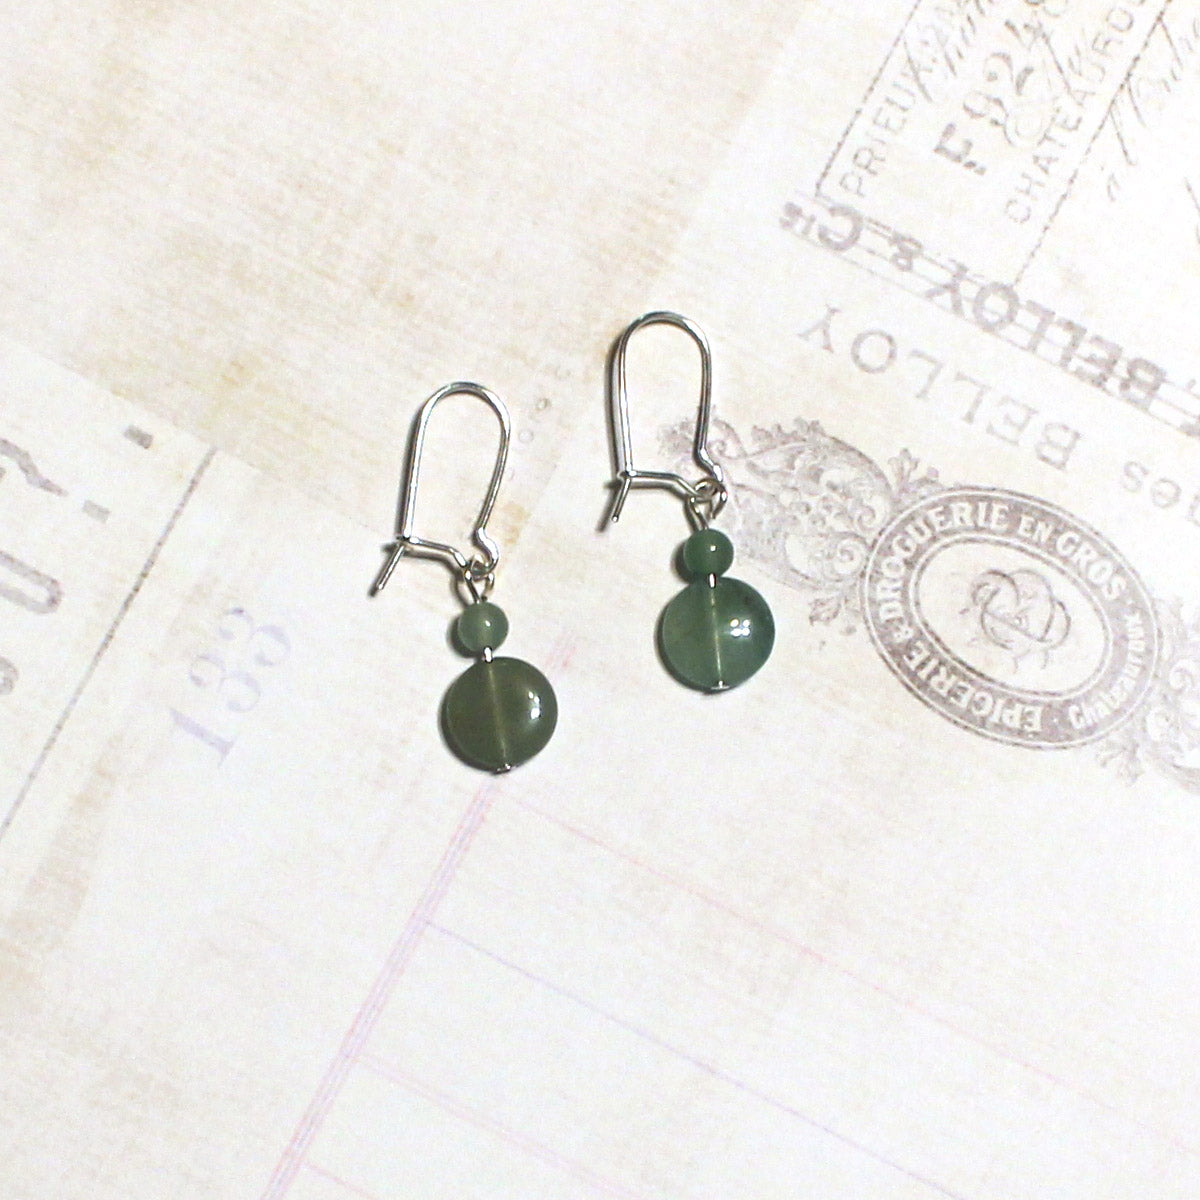 Aventurine Green Stone Earrings - Drop Earrings - Real Stone Earrings